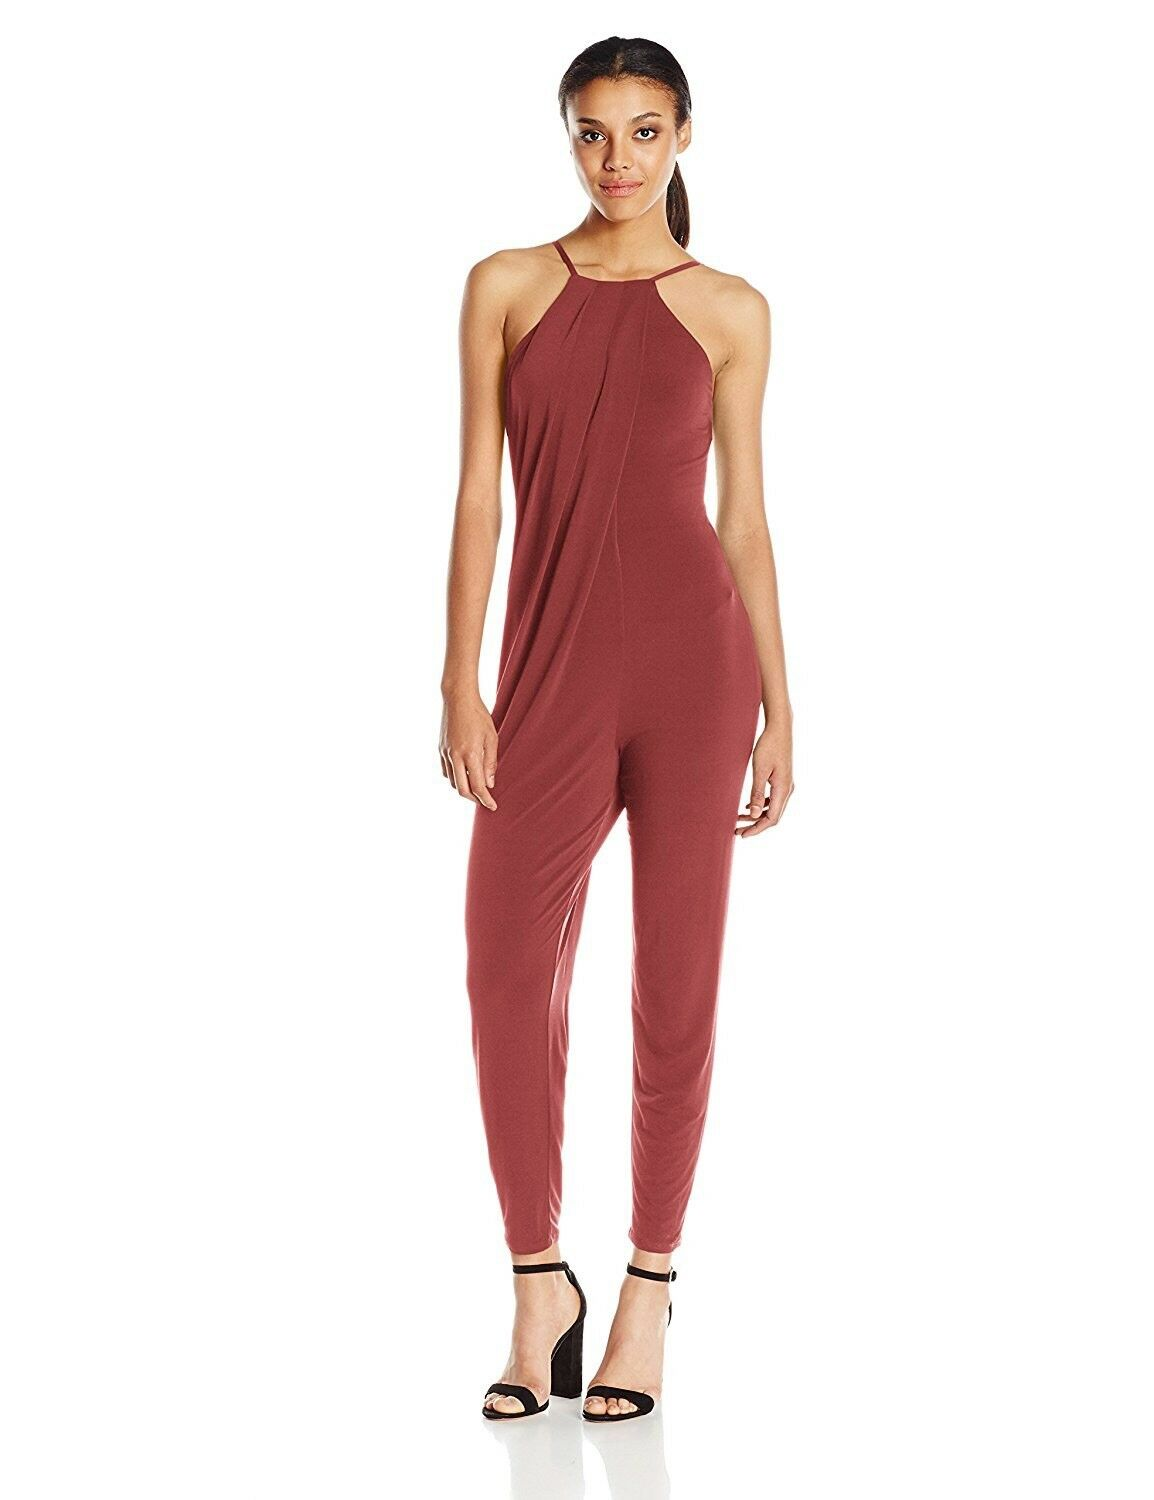 BCBGeneration Women's Cross Front Halter Jumpsuit Mahogany - Size Small